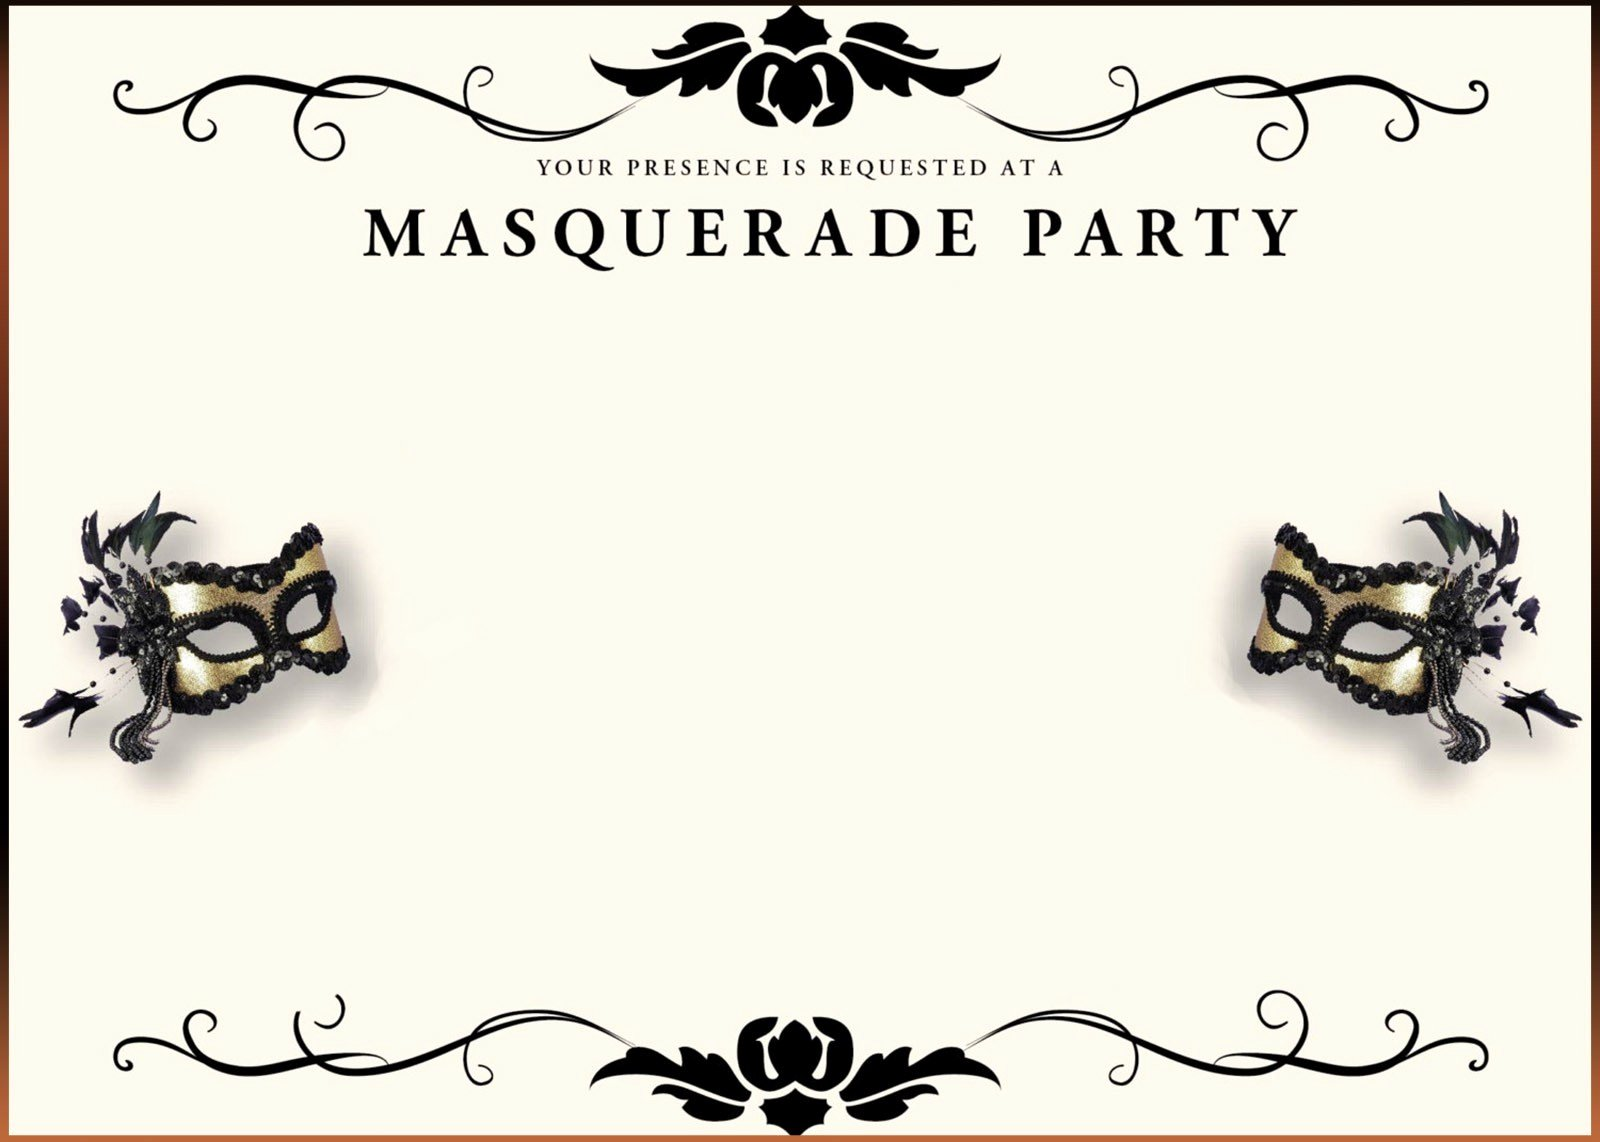 Masquerade Ball Invitations Wording Elegant Free Printable Masquerade Invitation Templates